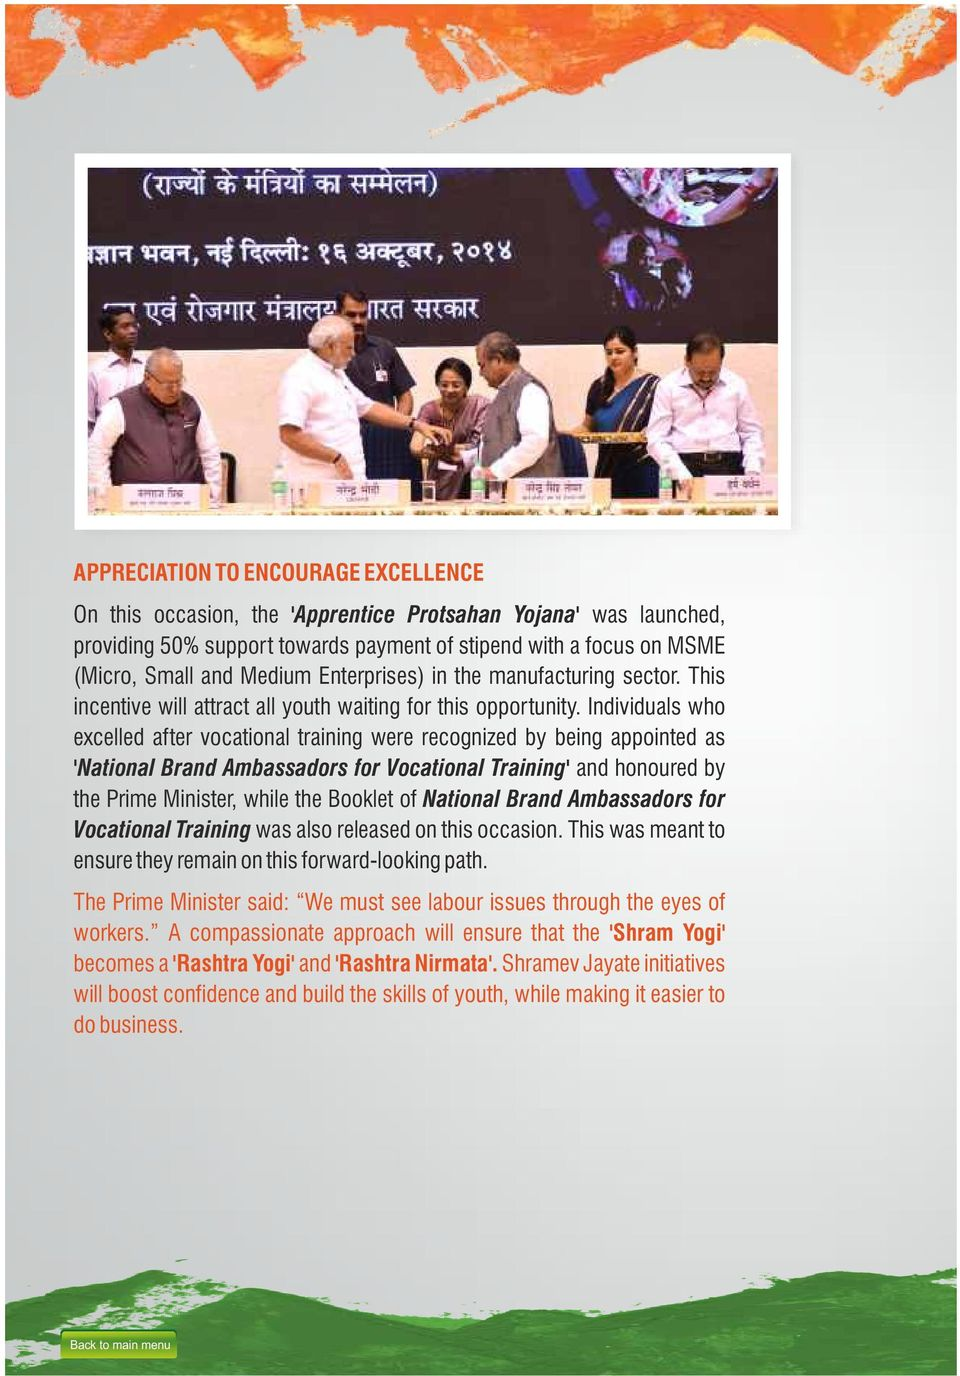 Individuals who excelled after vocational training were recognized by being appointed as 'National Brand Ambassadors for Vocational Training' and honoured by the Prime Minister, while the Booklet of